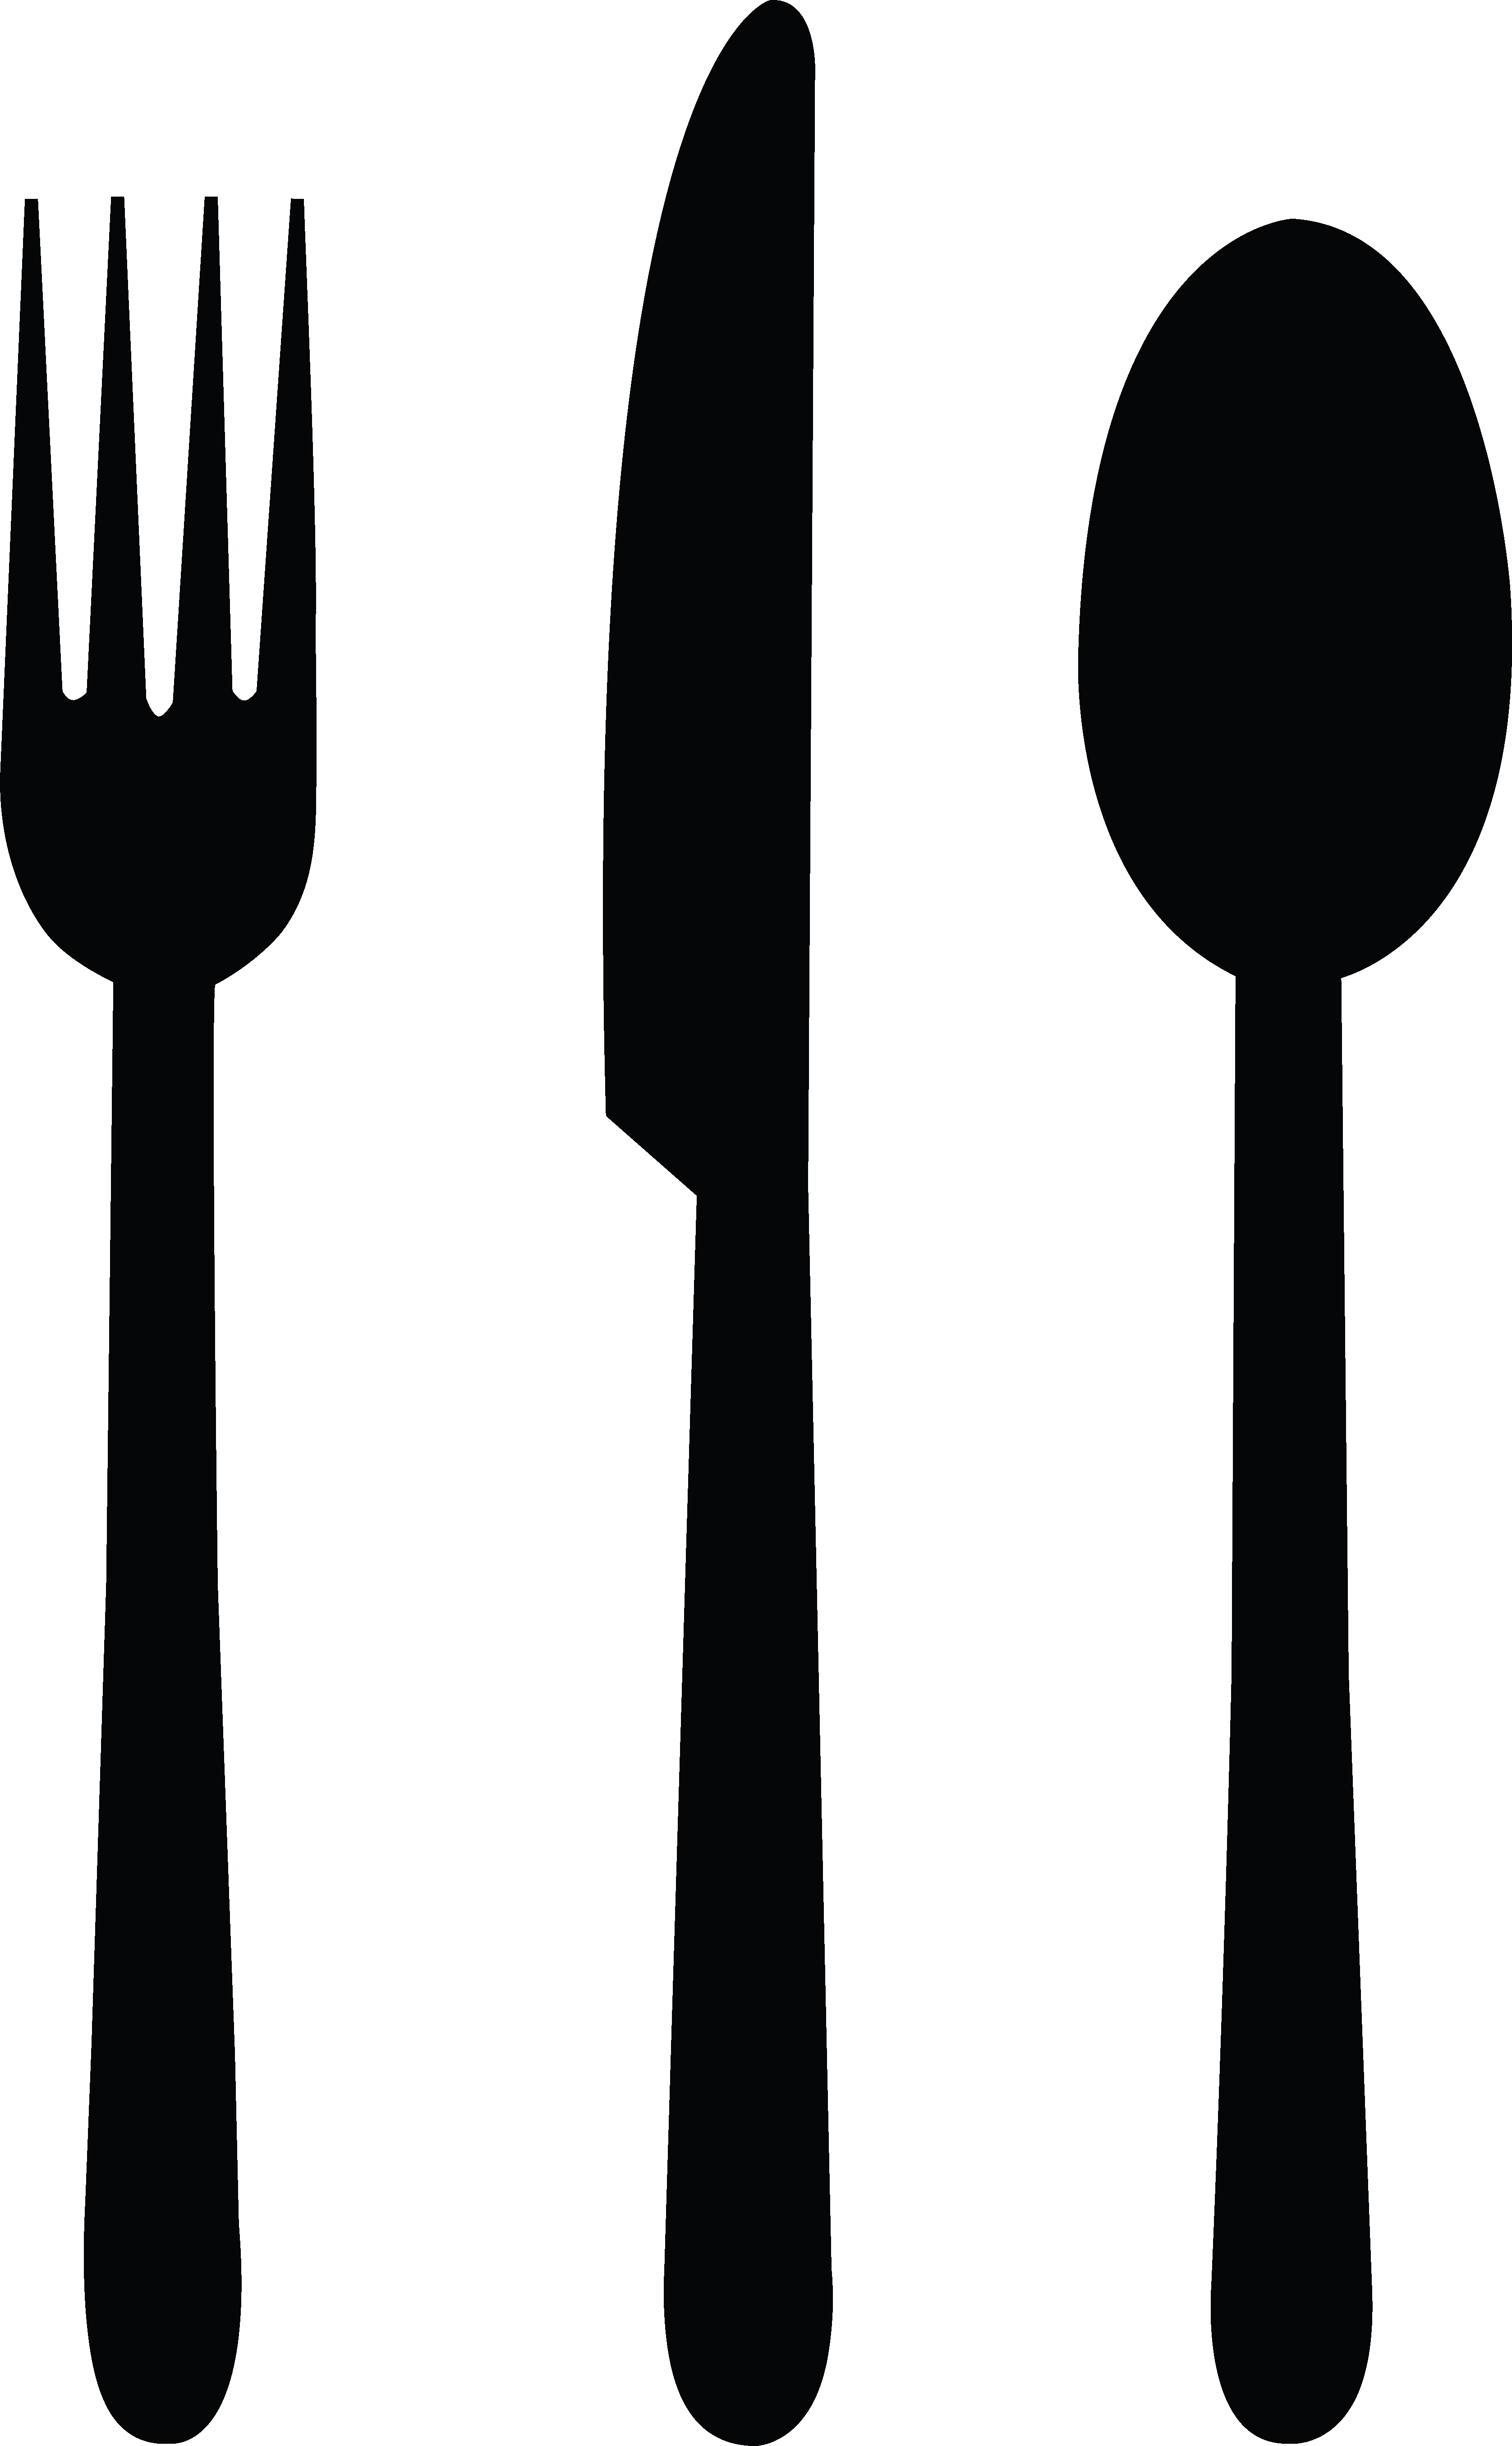 Line Drawing Knife And Fork : Silverware clipart panda free images